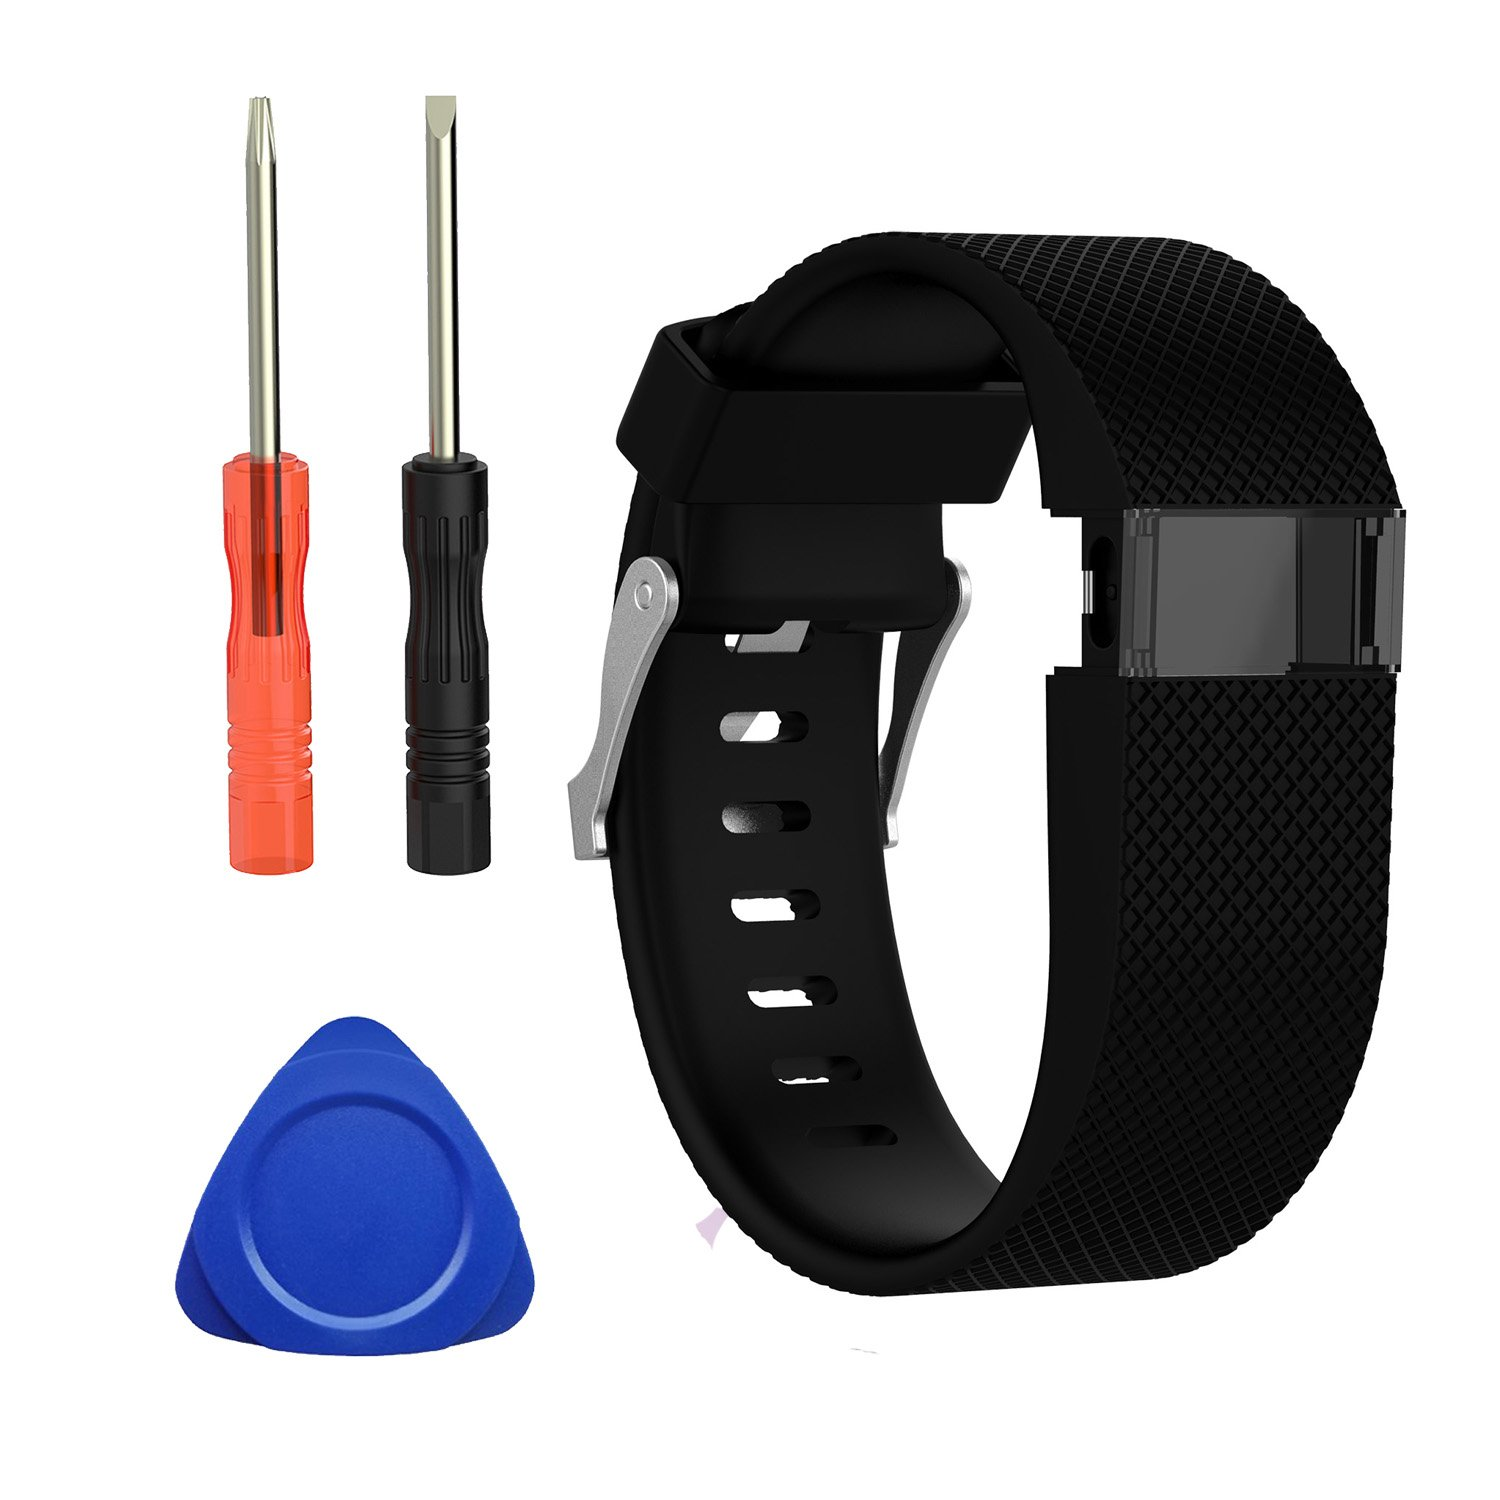 I-SMILE Fitbit Charge HR Bands, Sepcial Colorful Edition Soft Silicone Adjustable Replacement Wristband with Metal Buckle Clasp for Fitbit Charge HR Bands